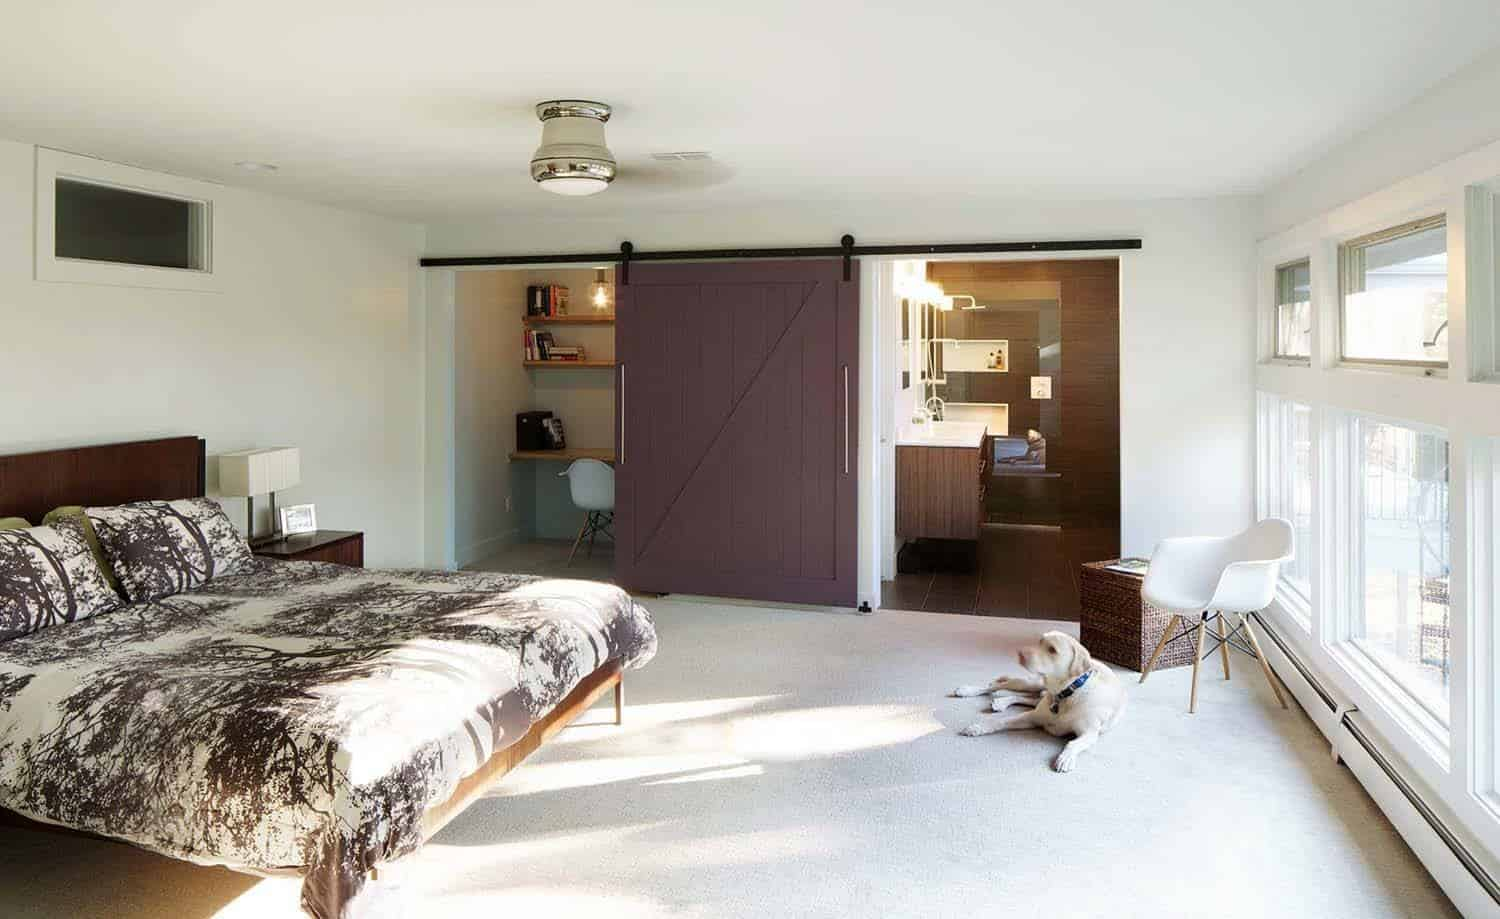 a century stylish ideas bedroom gray midcentury county of master floor with in example large design modern photos orange light mid wood